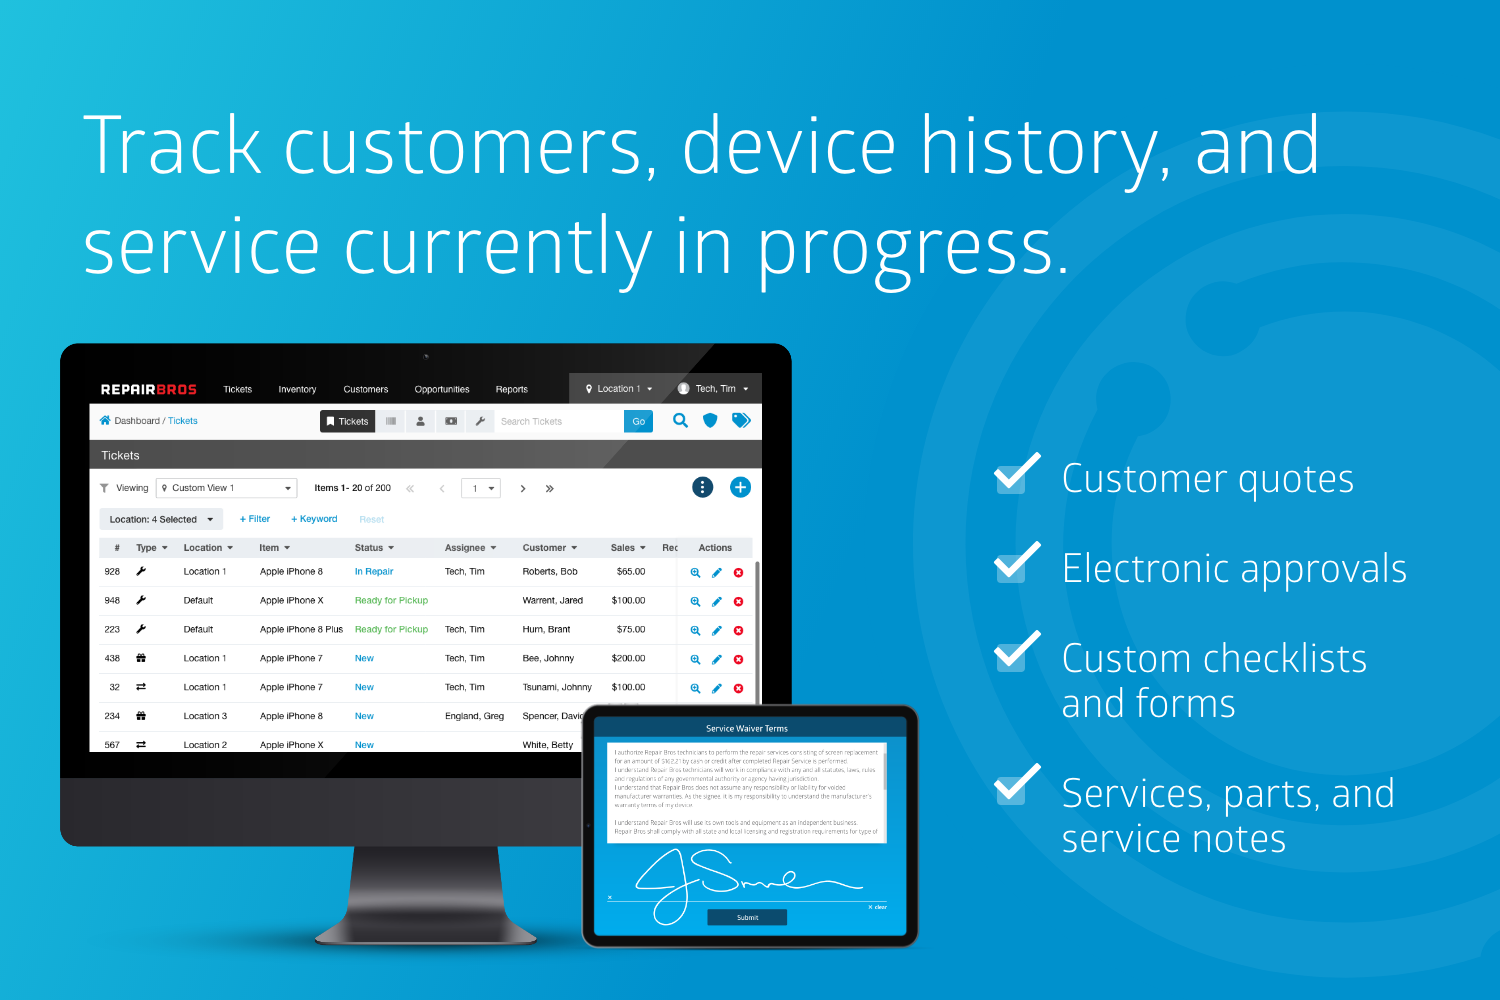 Track customers, device history, and service currently in progress.